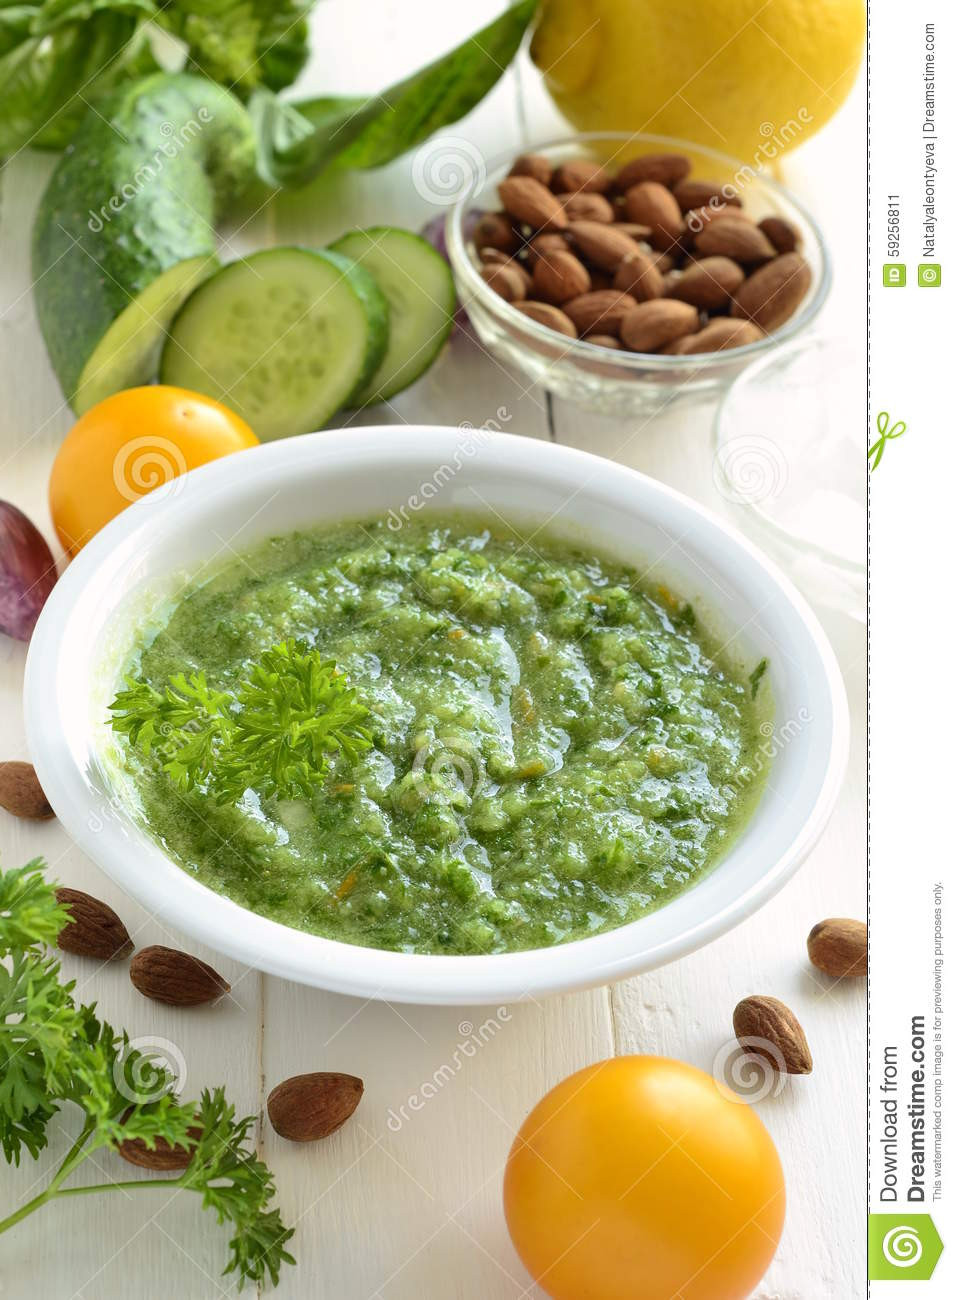 Healthy Vegetable Smoothies  Healthy Ve able Green Smoothies Stock Image